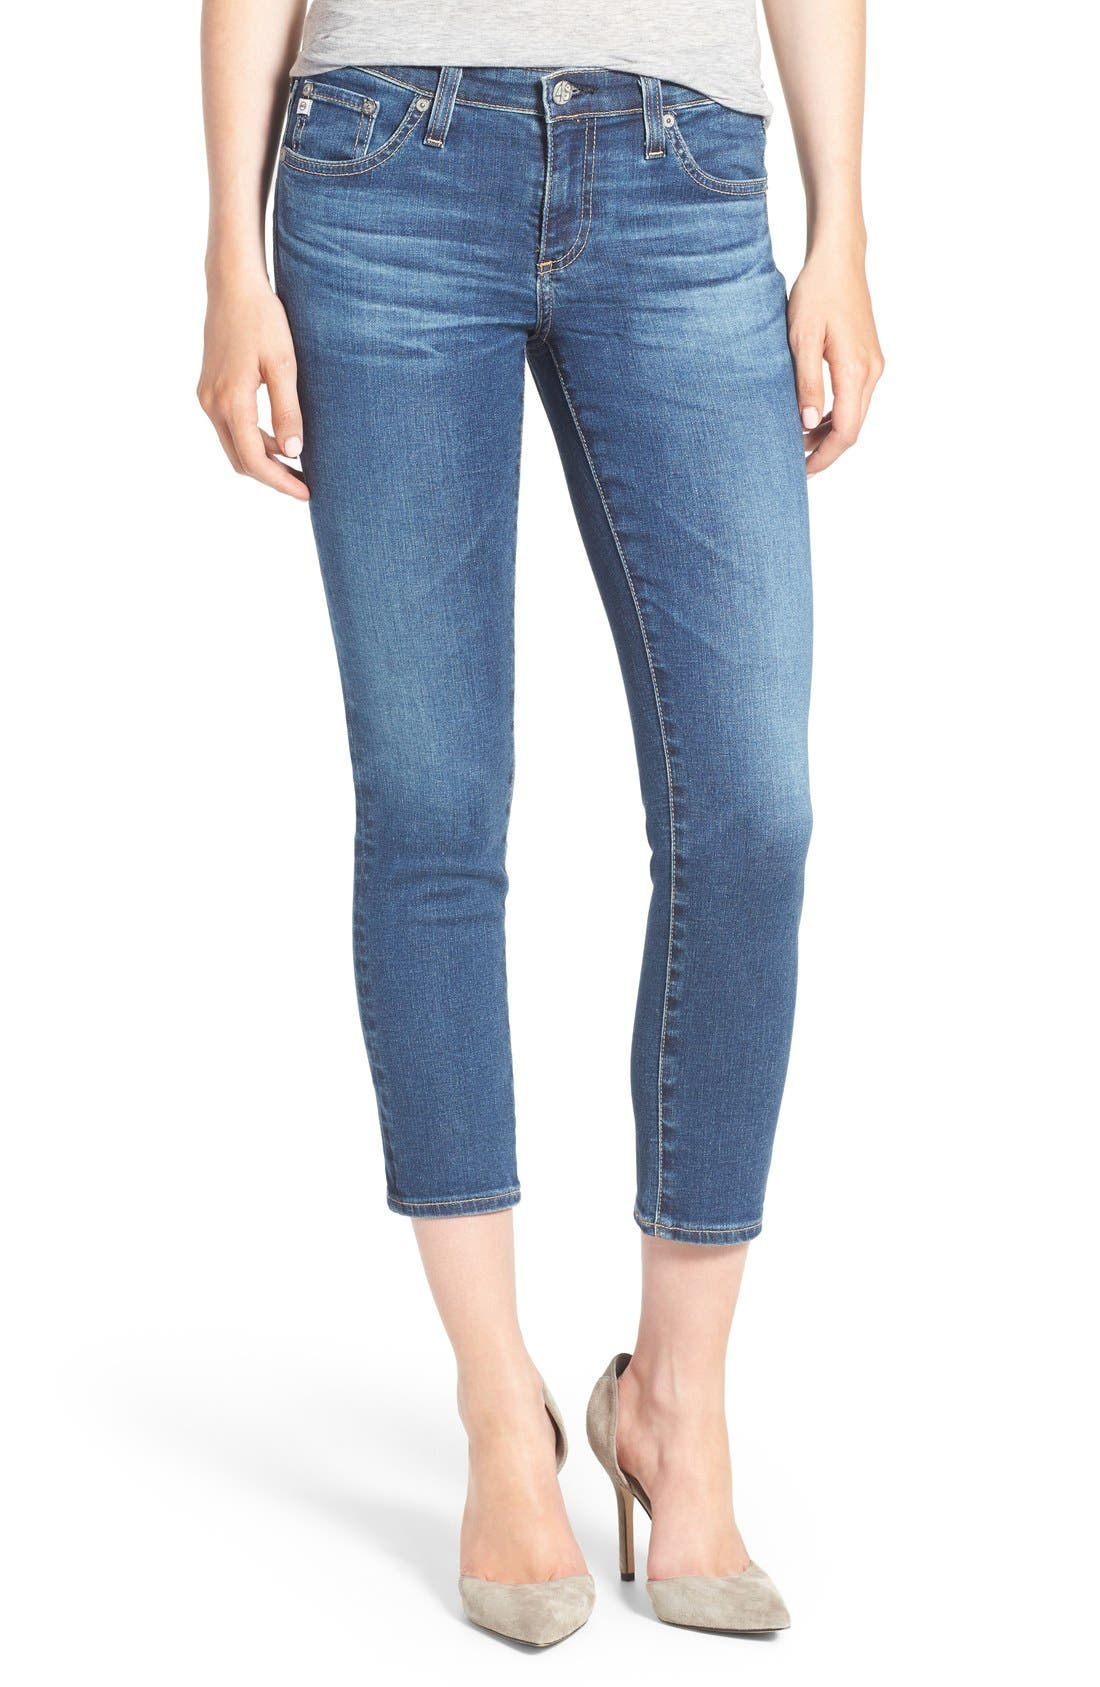 Alternate Image 1 Selected - AG Jeans 'The Stilt' Crop Skinny Stretch Jeans